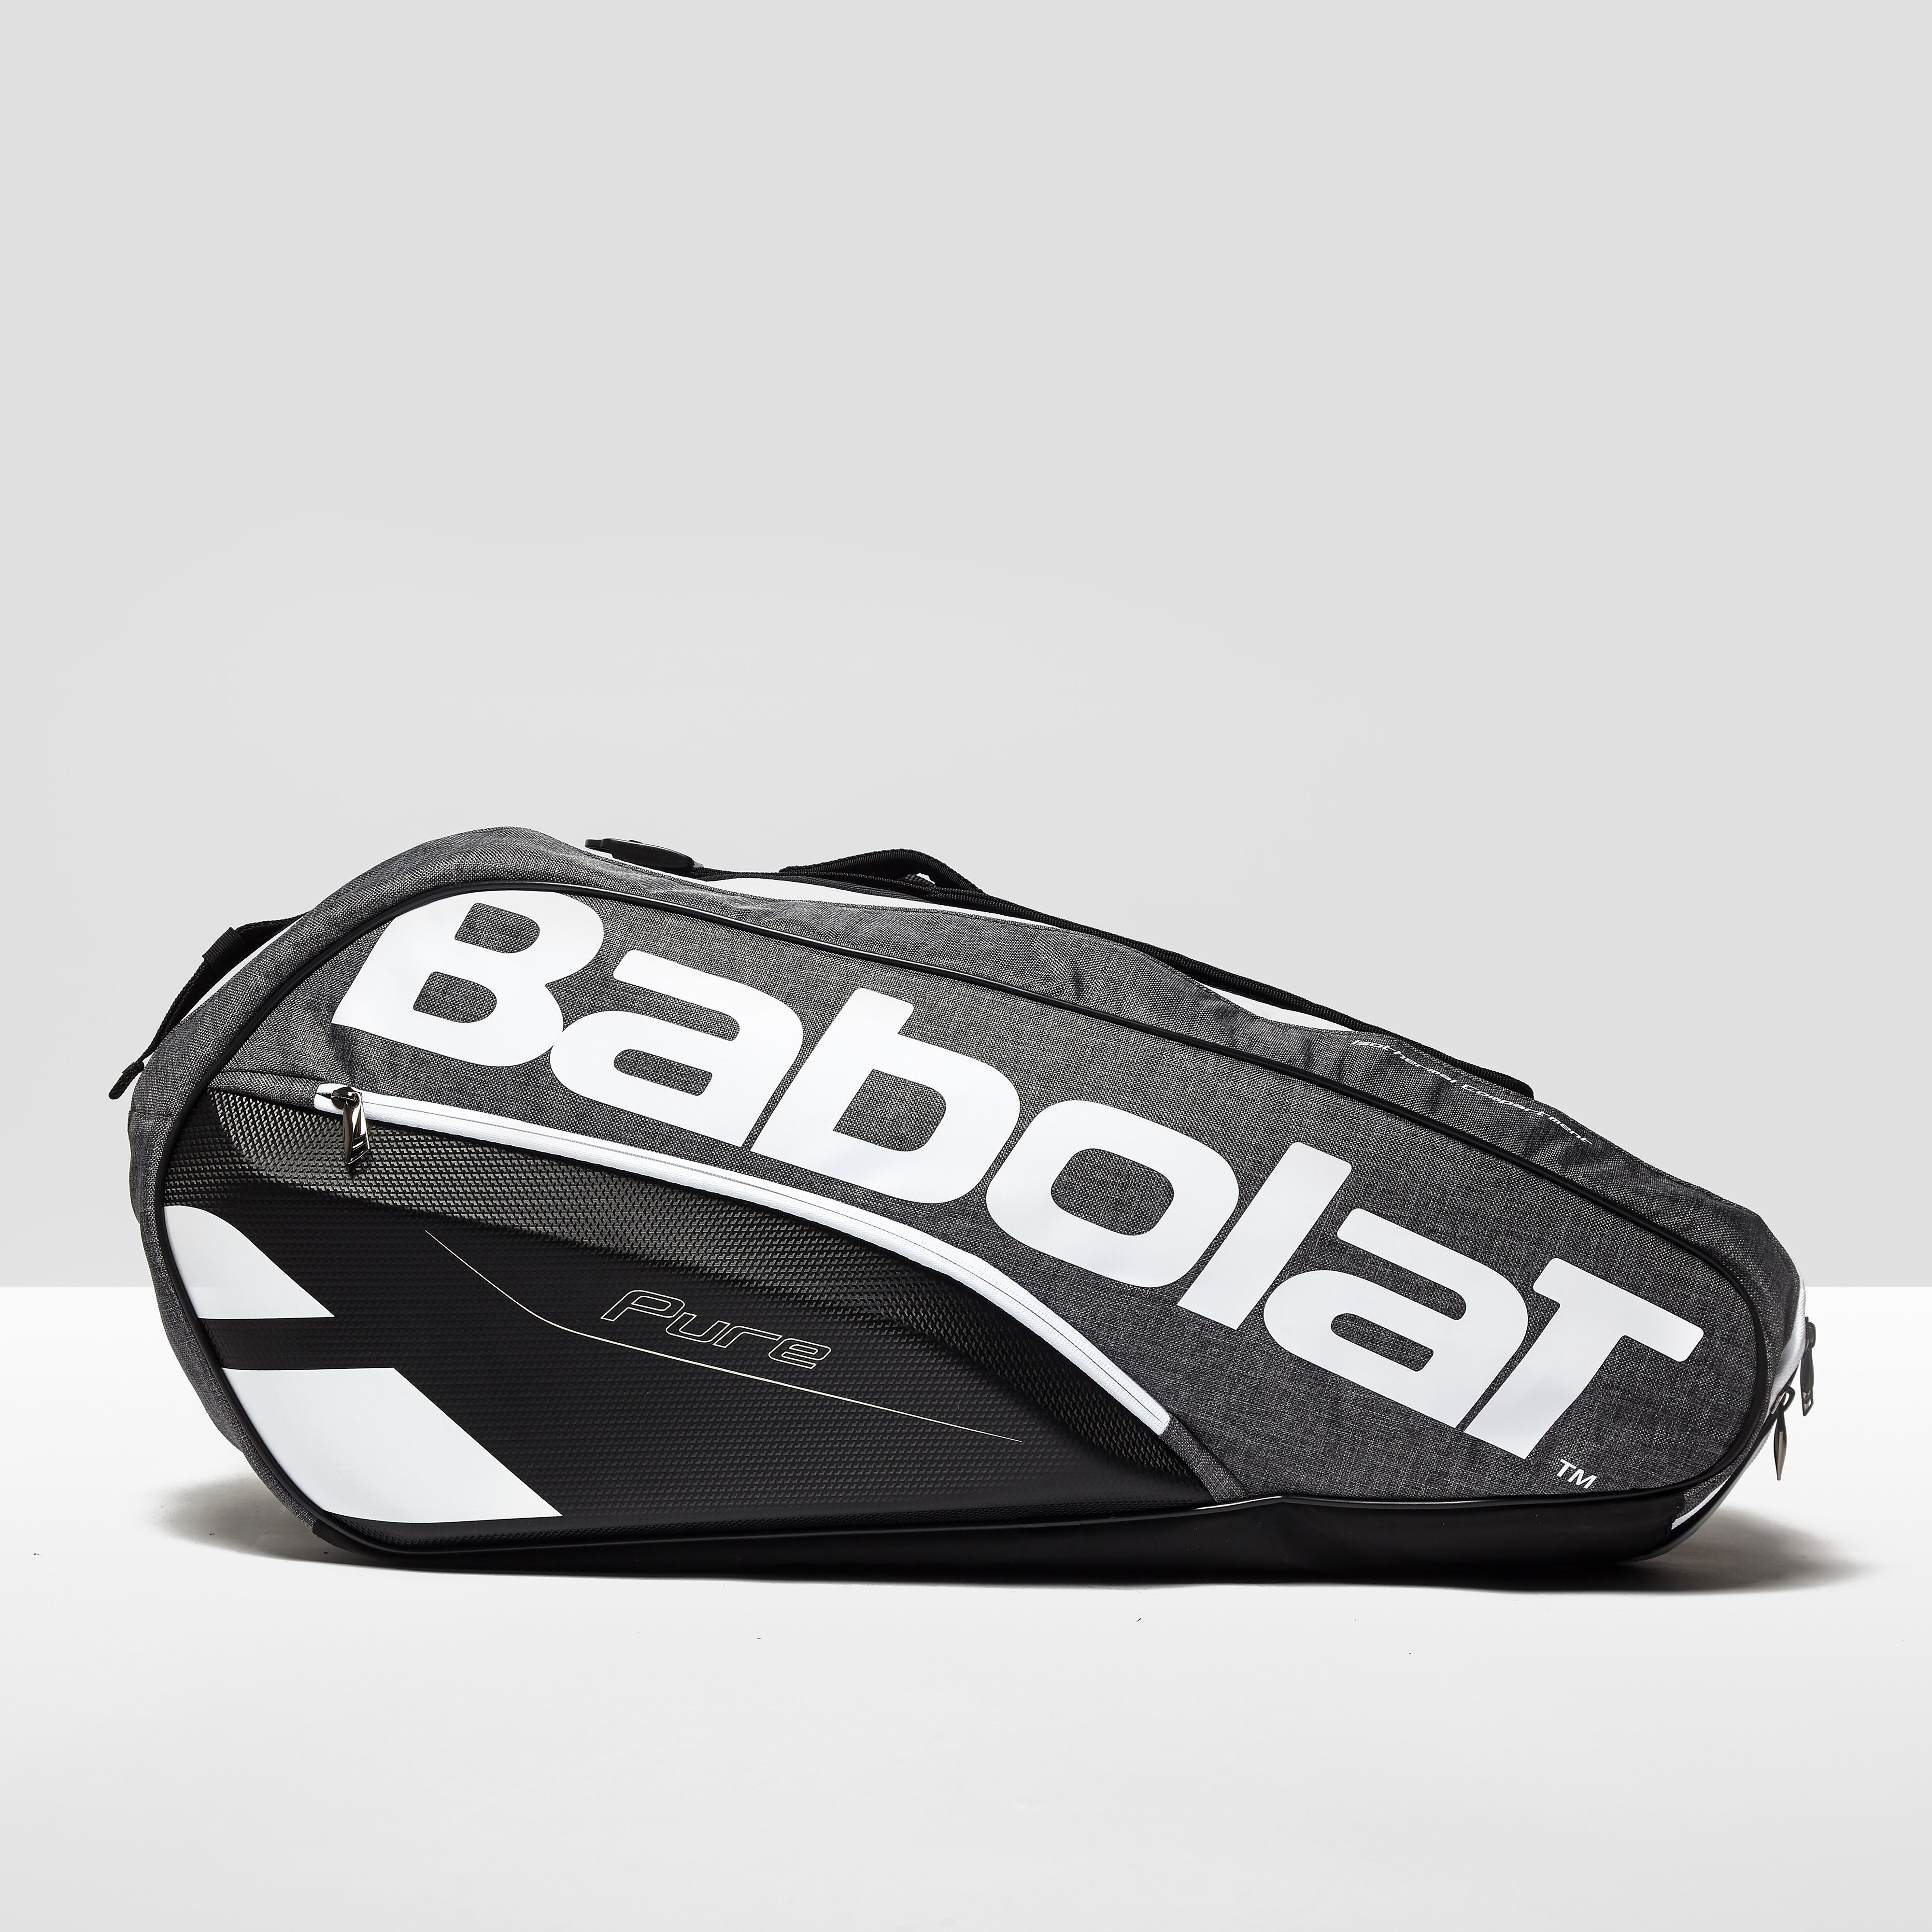 Babolat Babolat Pure 9 Racket Bag